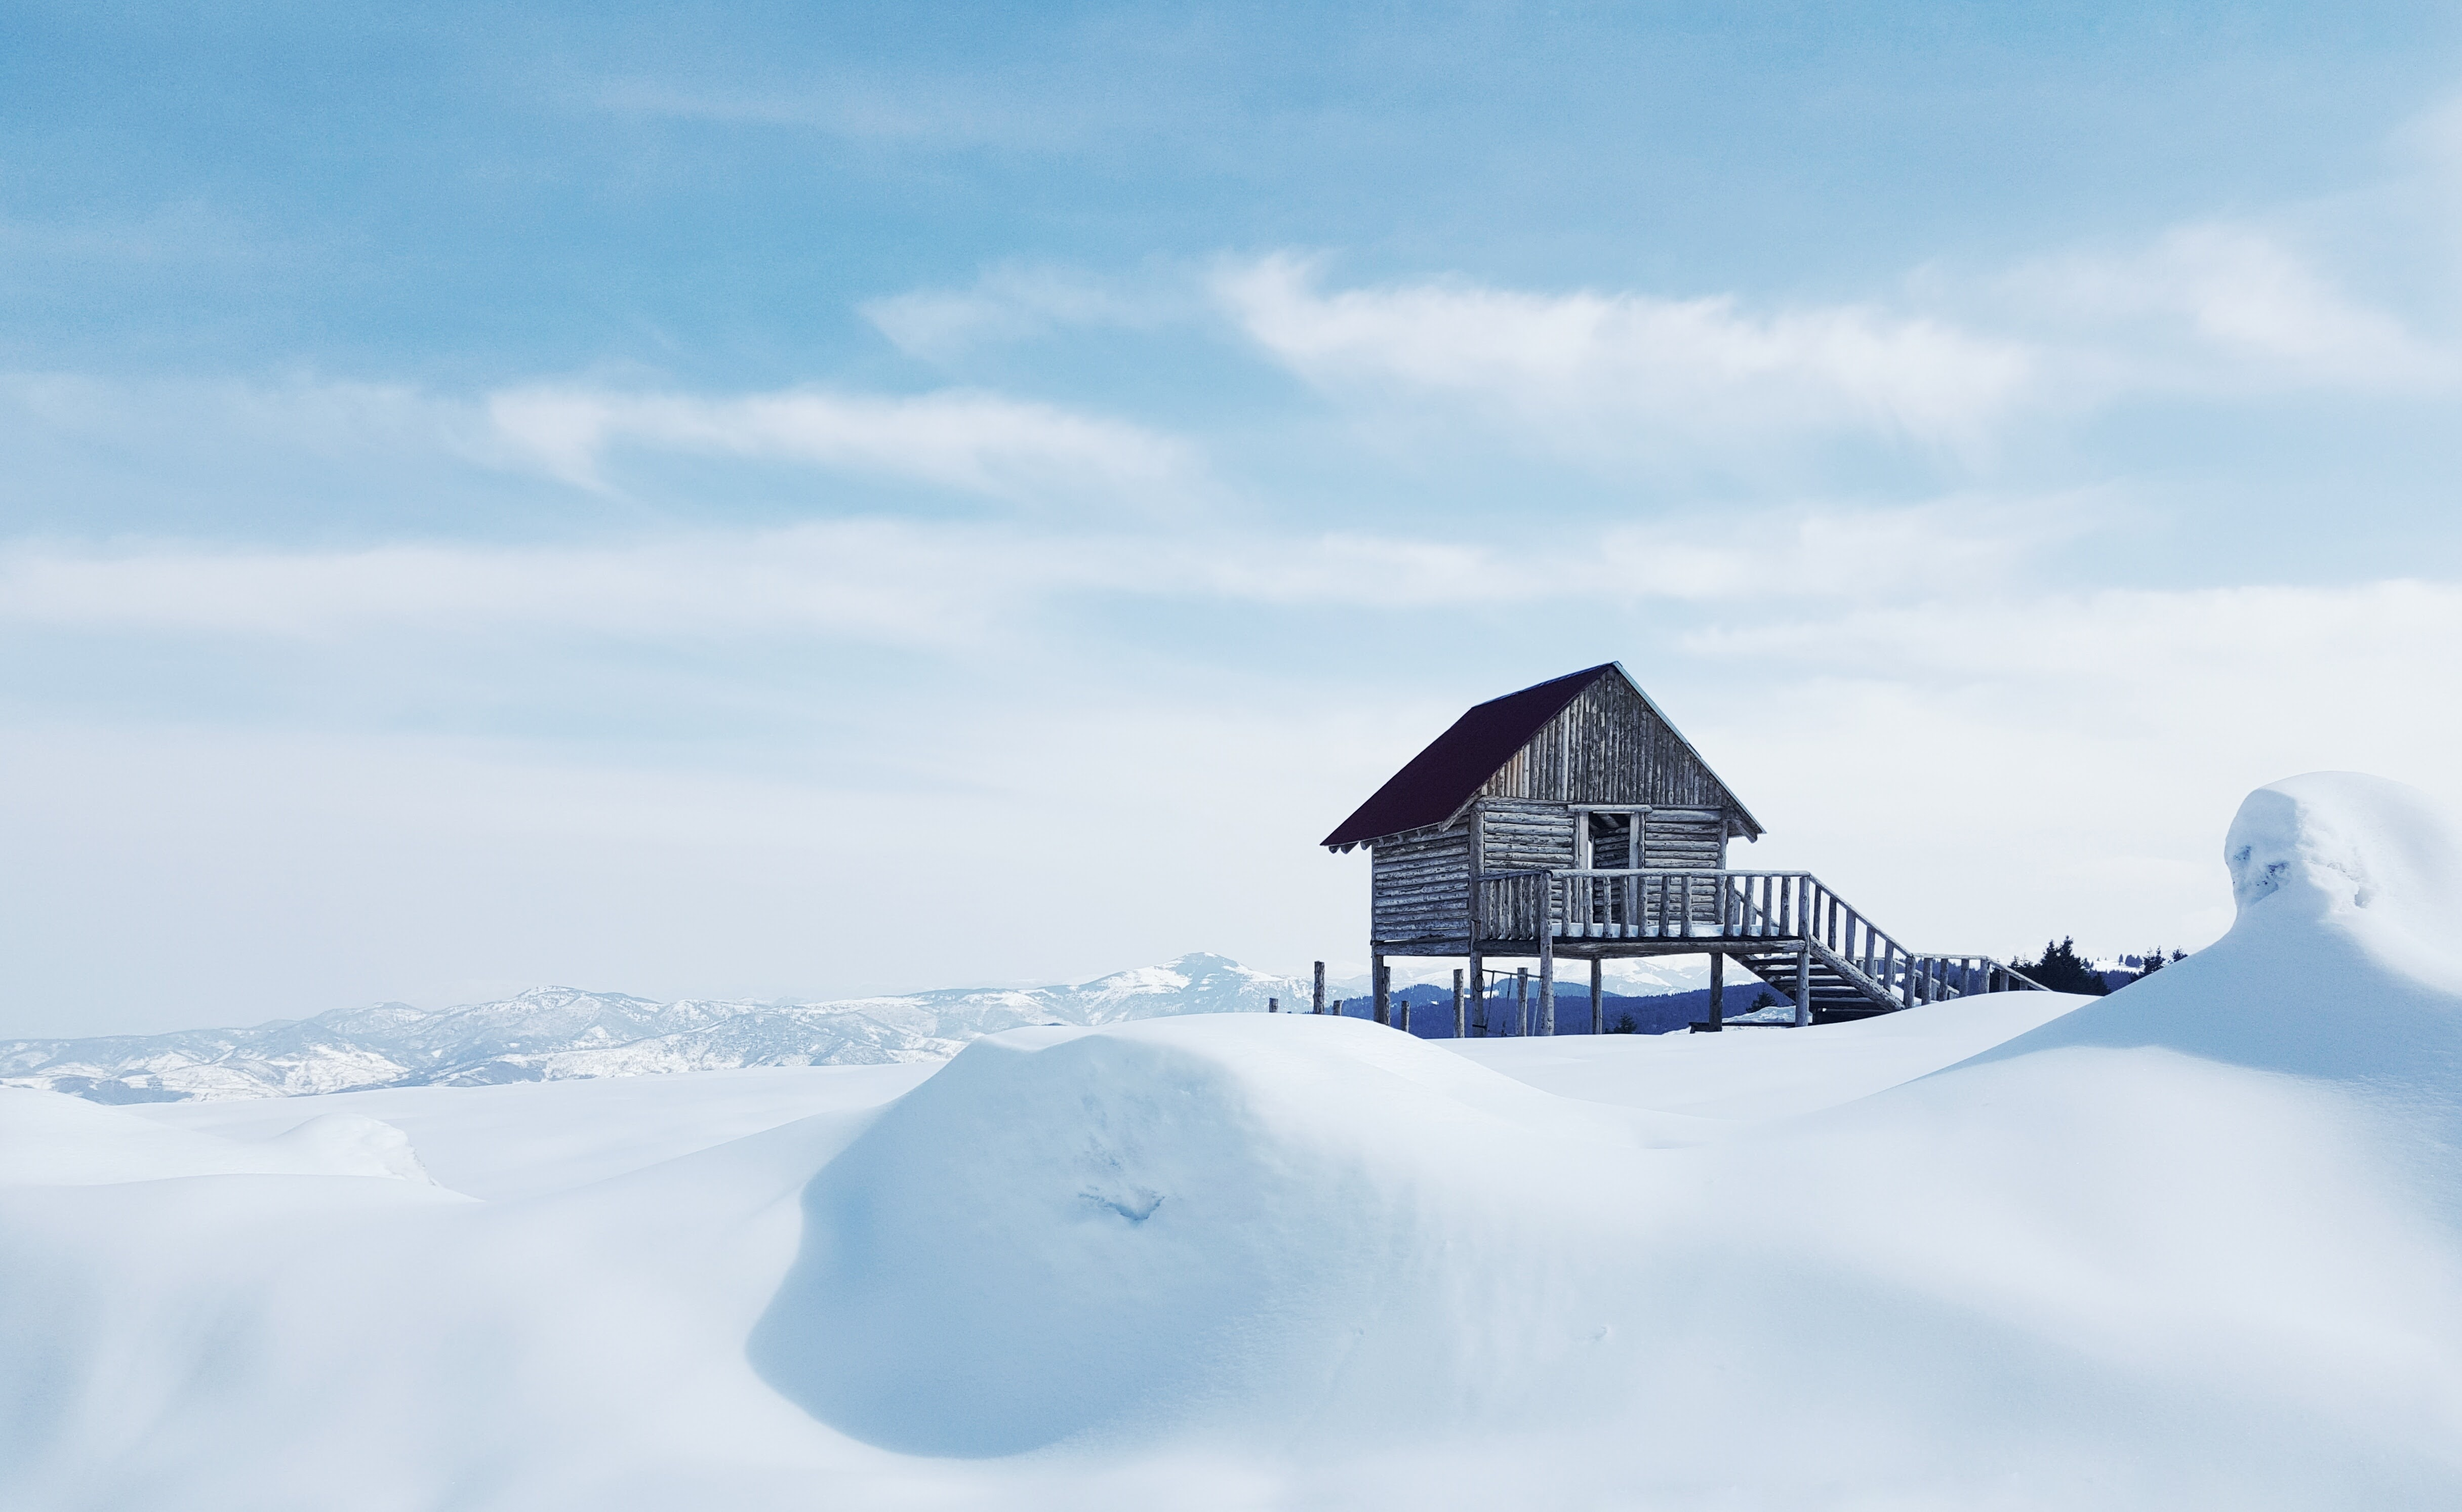 brown cabin on snowy iland